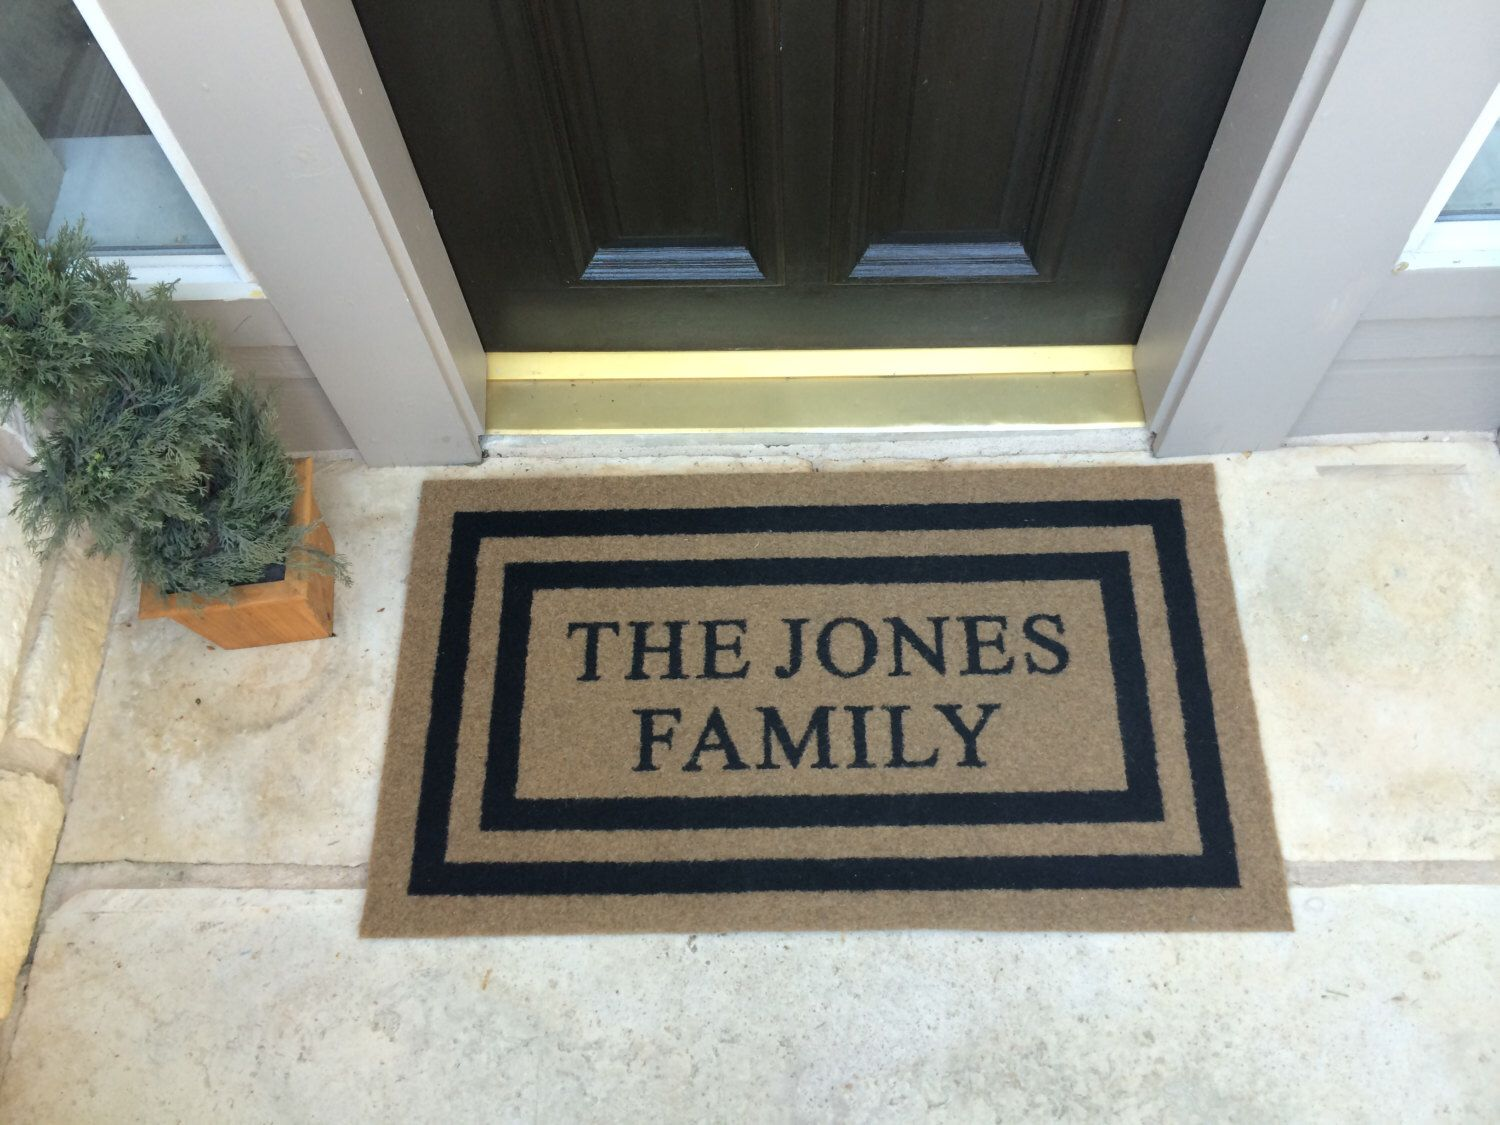 The Most Elegant And Durable Door Mat On The Market Today. Our Custom Door  Mats Do Not Shred, Shed Or Fade. They Are All Weather And Resist Mildew.